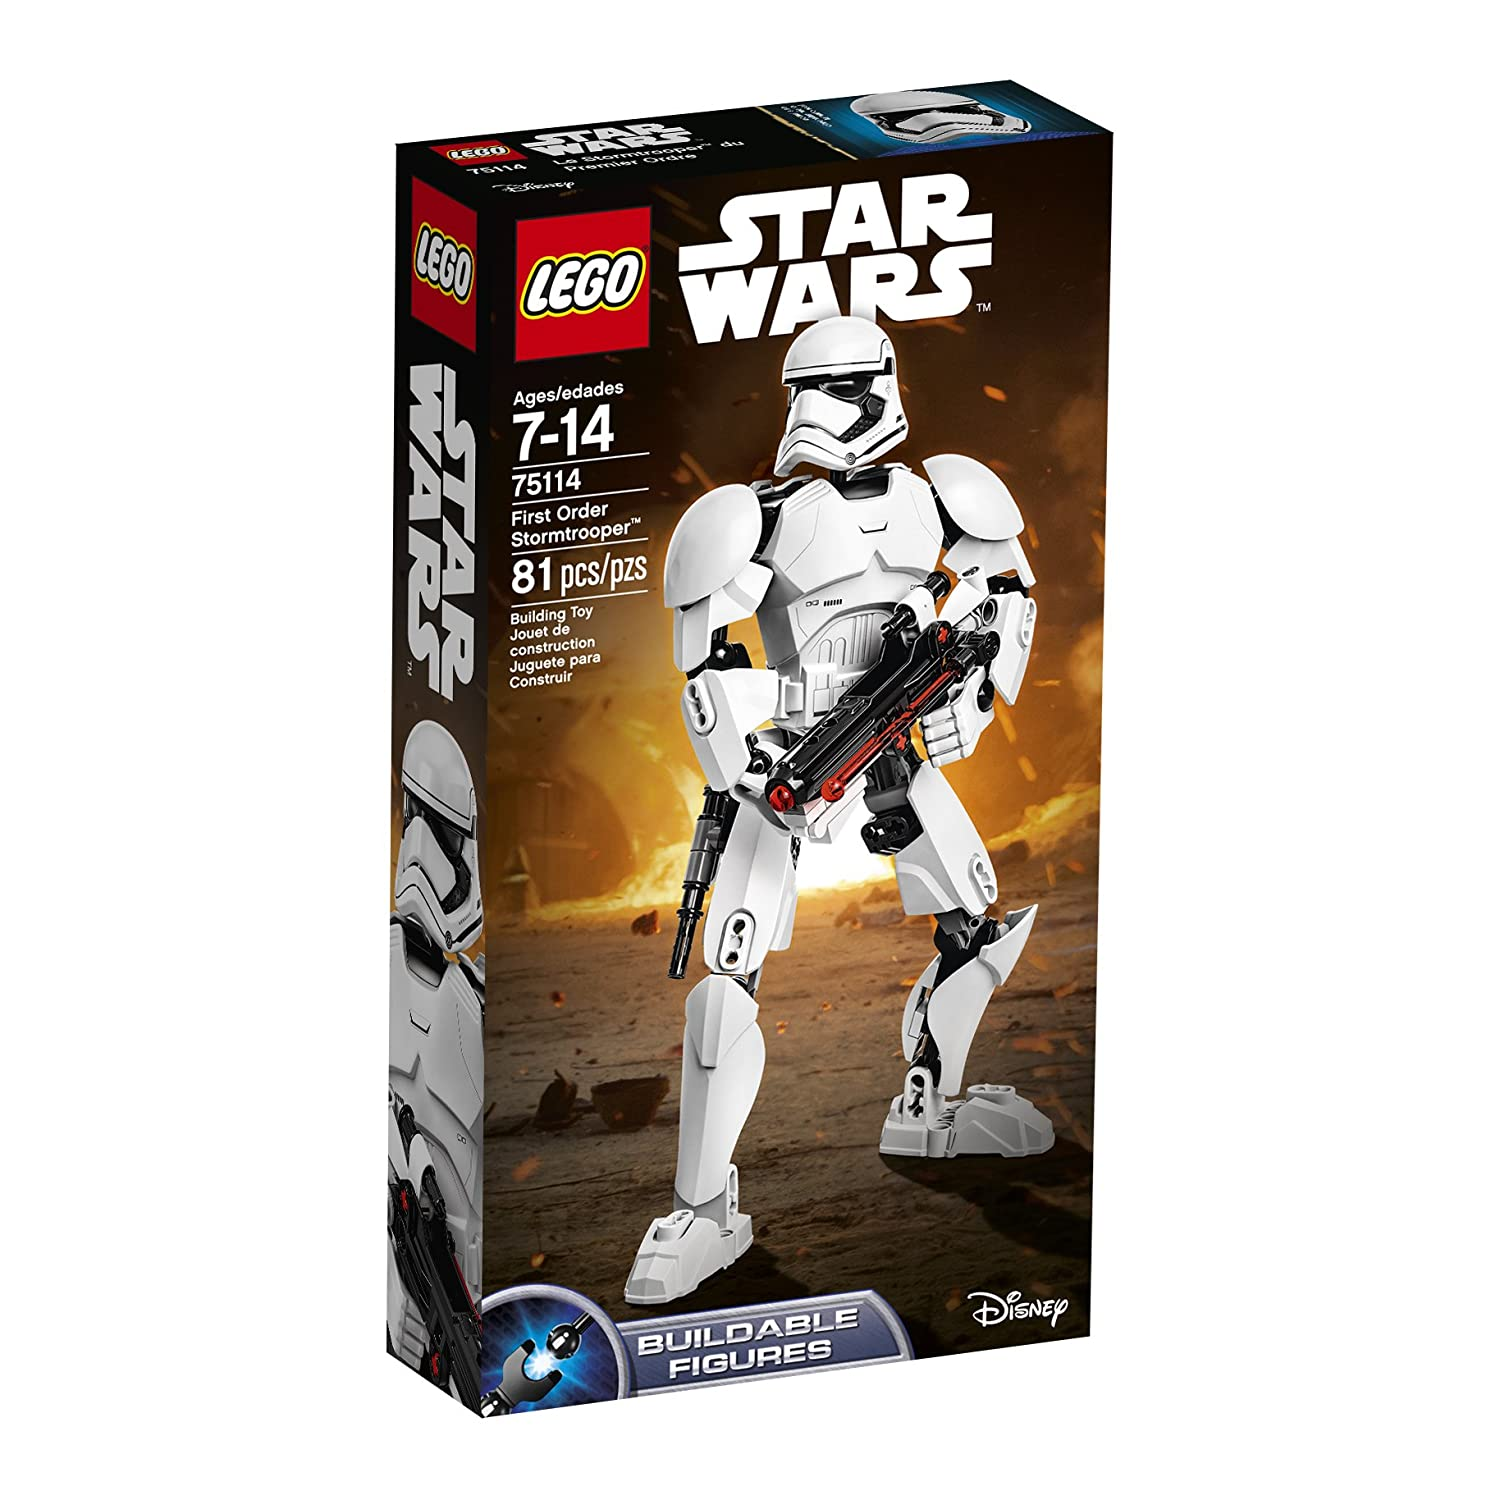 Amazon Star Wars Toys & Games